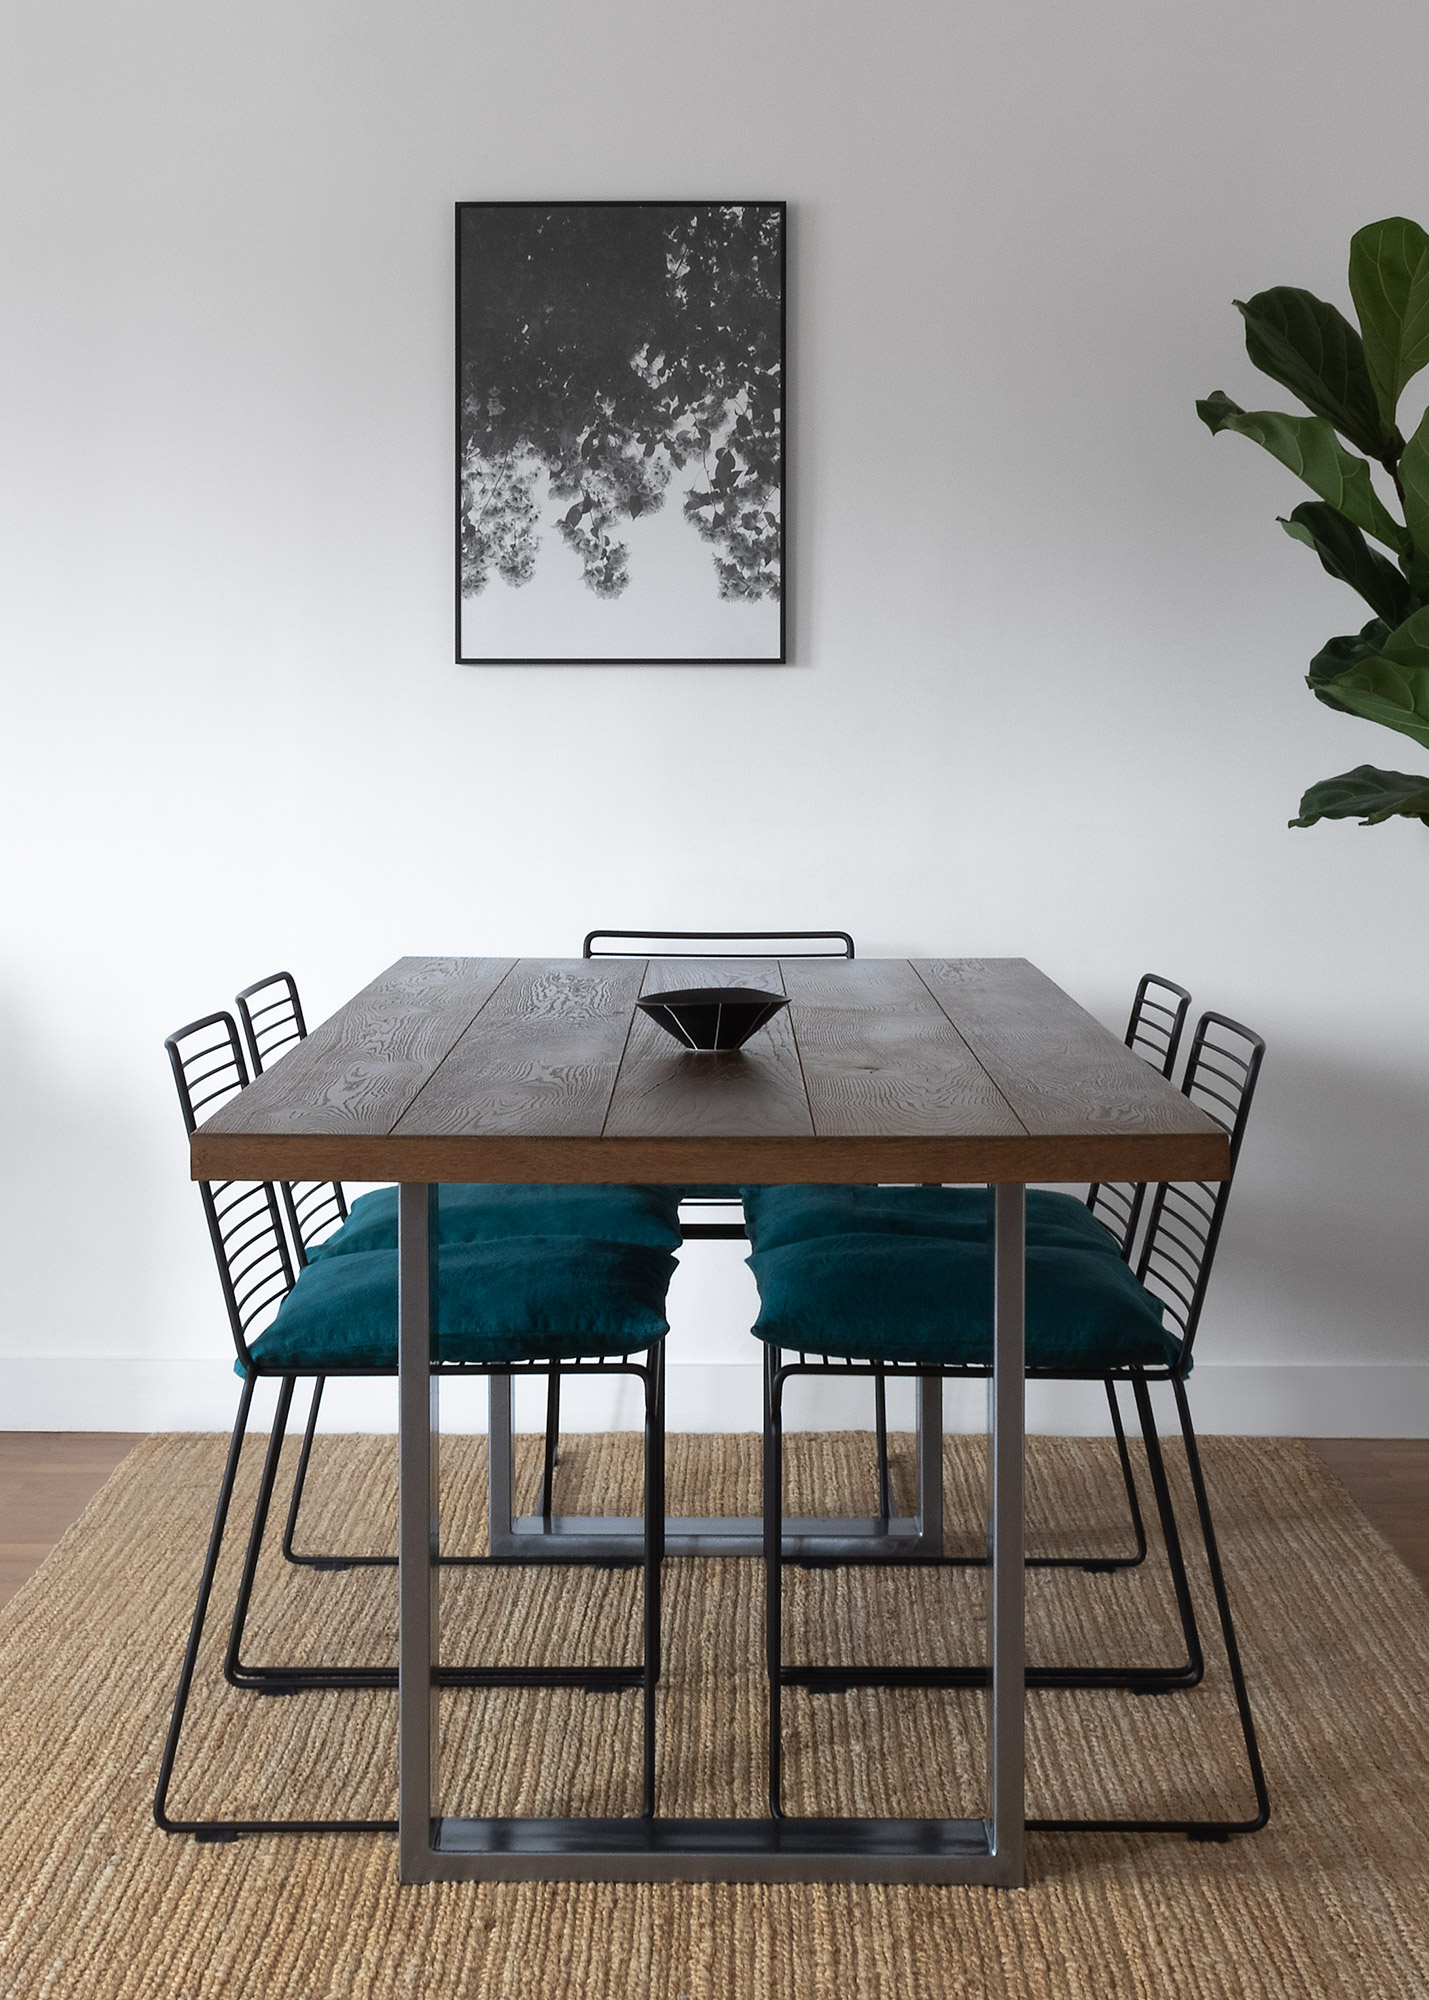 Modern oak dining table with black metal chairs and teal cushions on a jute rug